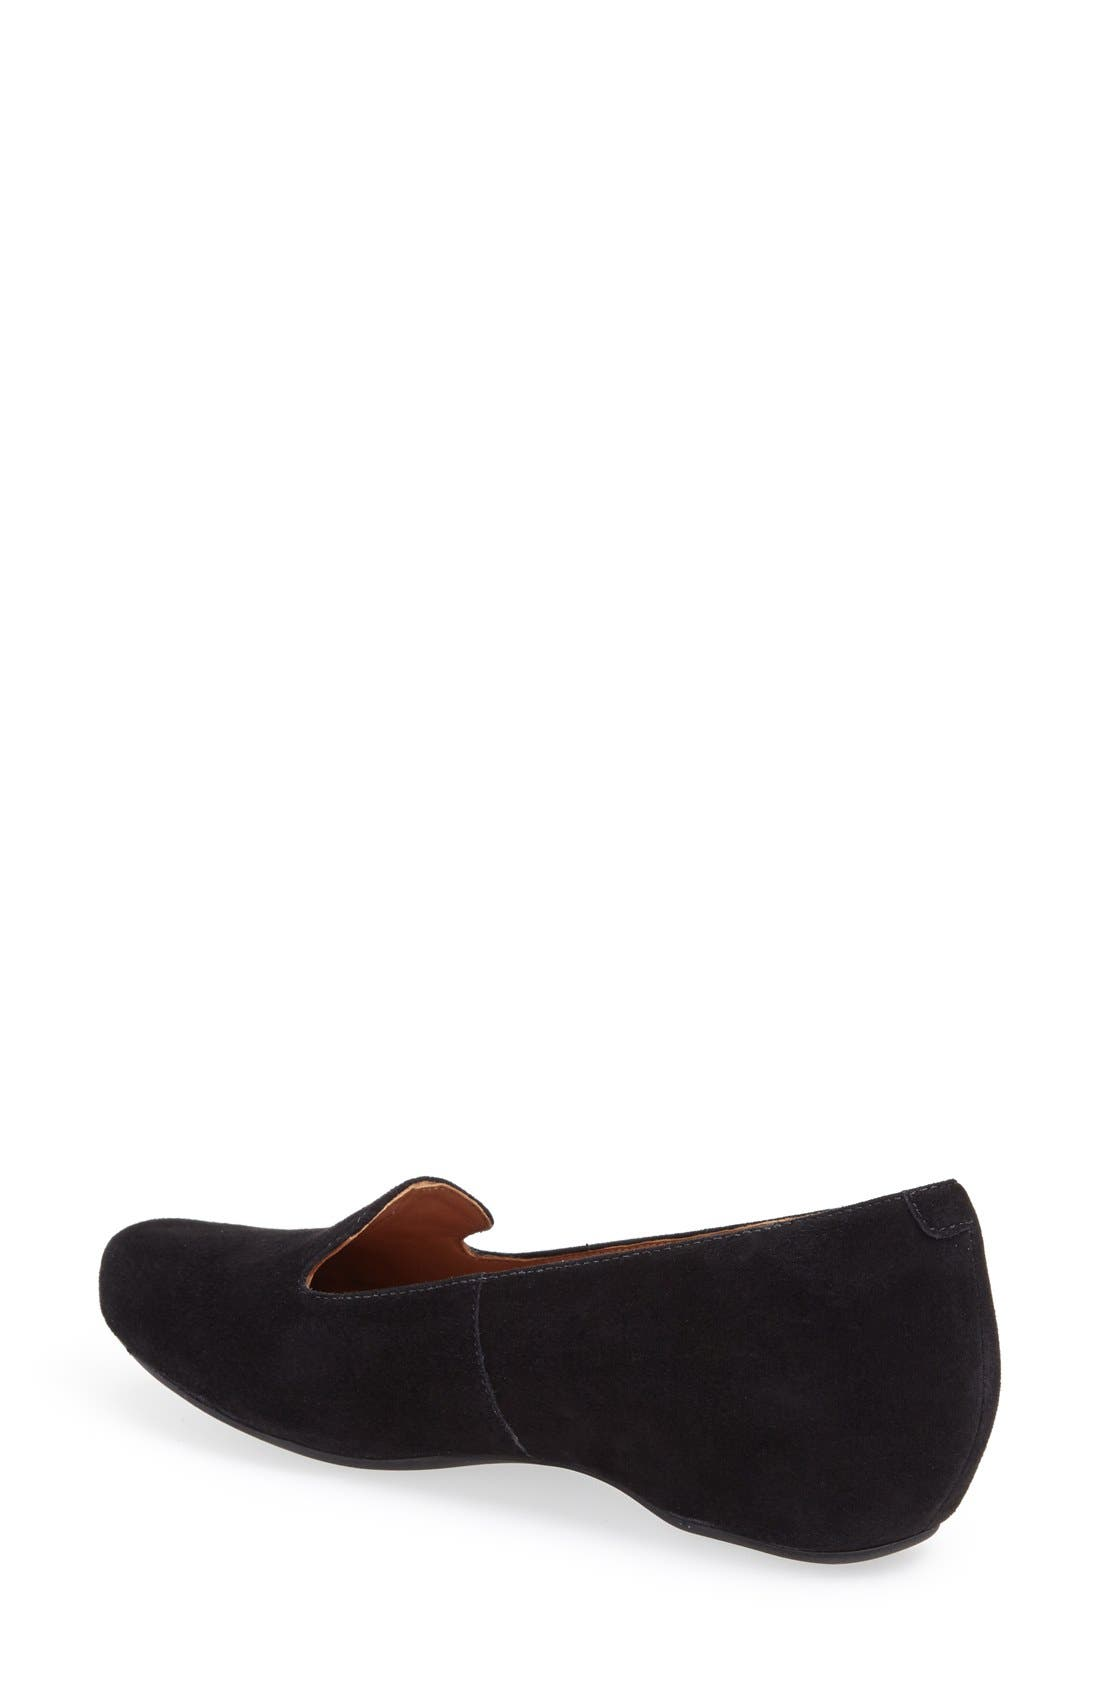 Alternate Image 2  - Clarks® 'Concert Jazz' Suede Flat (Women)